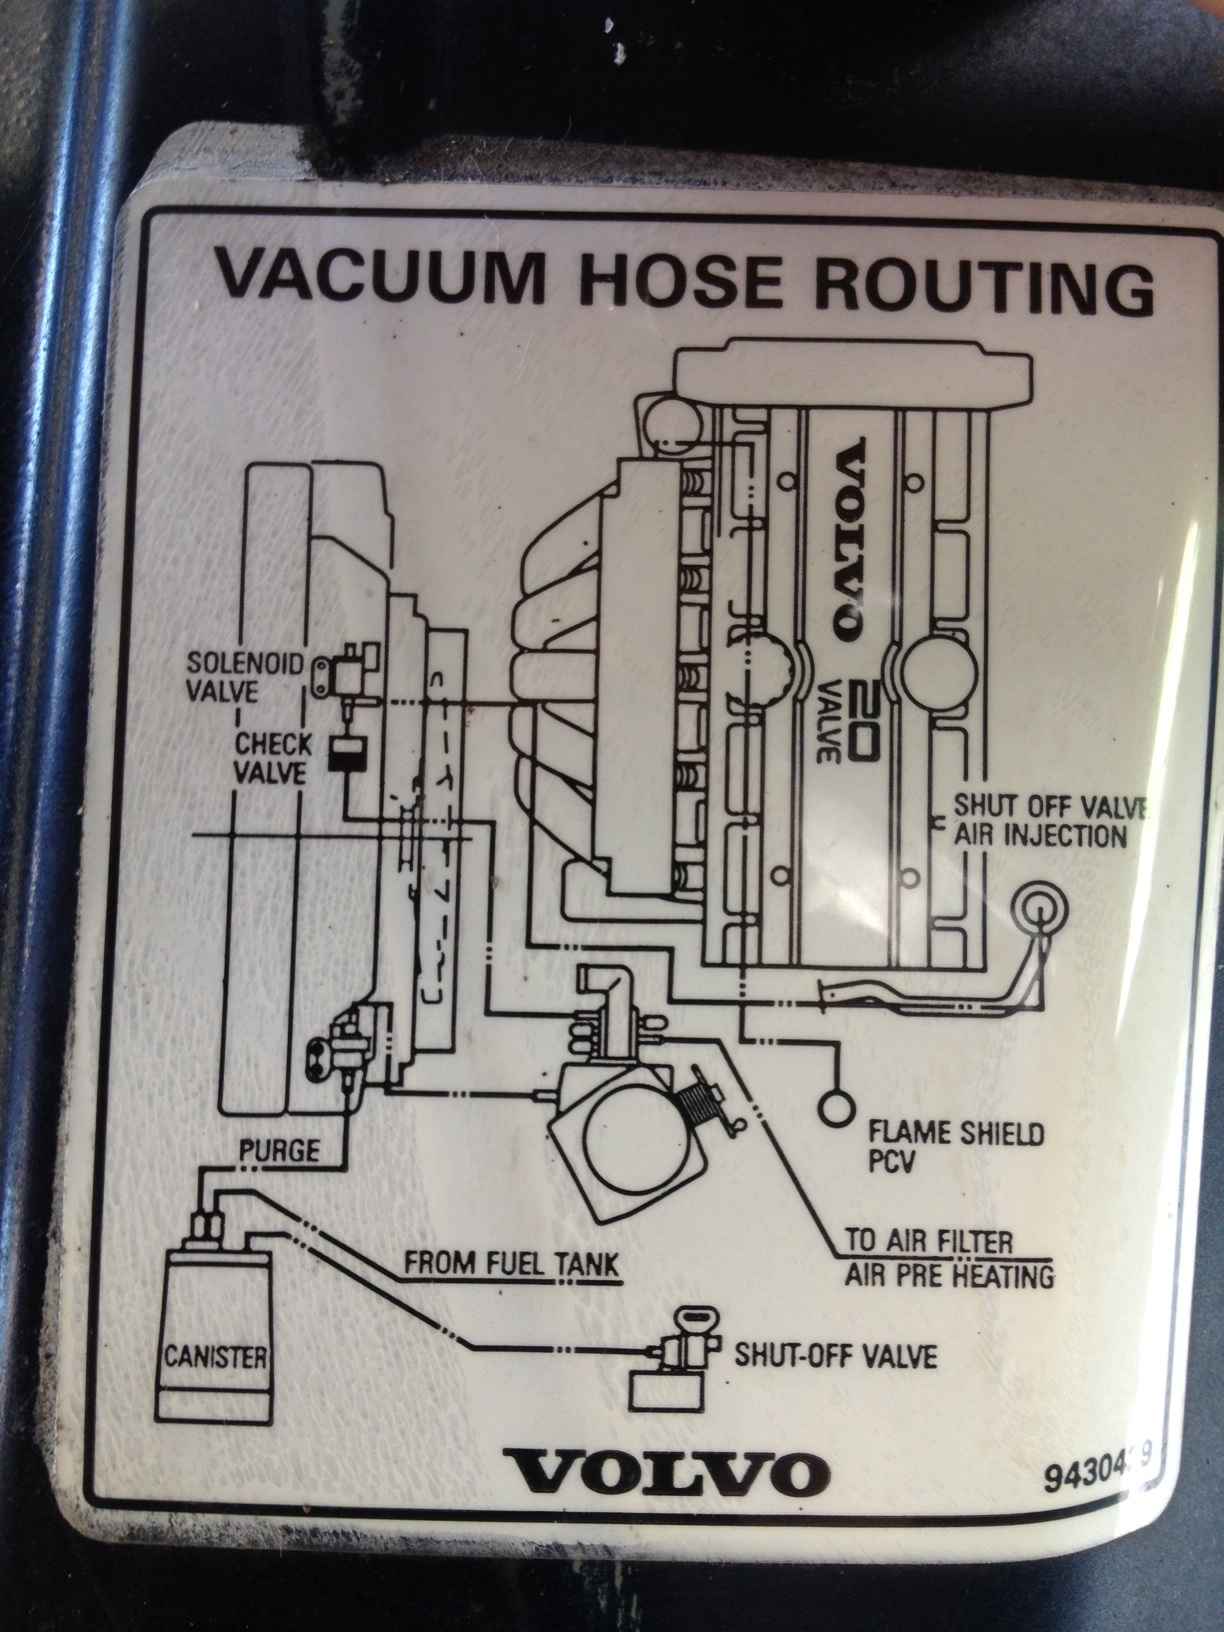 Finally a vacuum hose diagram page 3 vacuum hose routing 96 850 nonturbog pooptronica